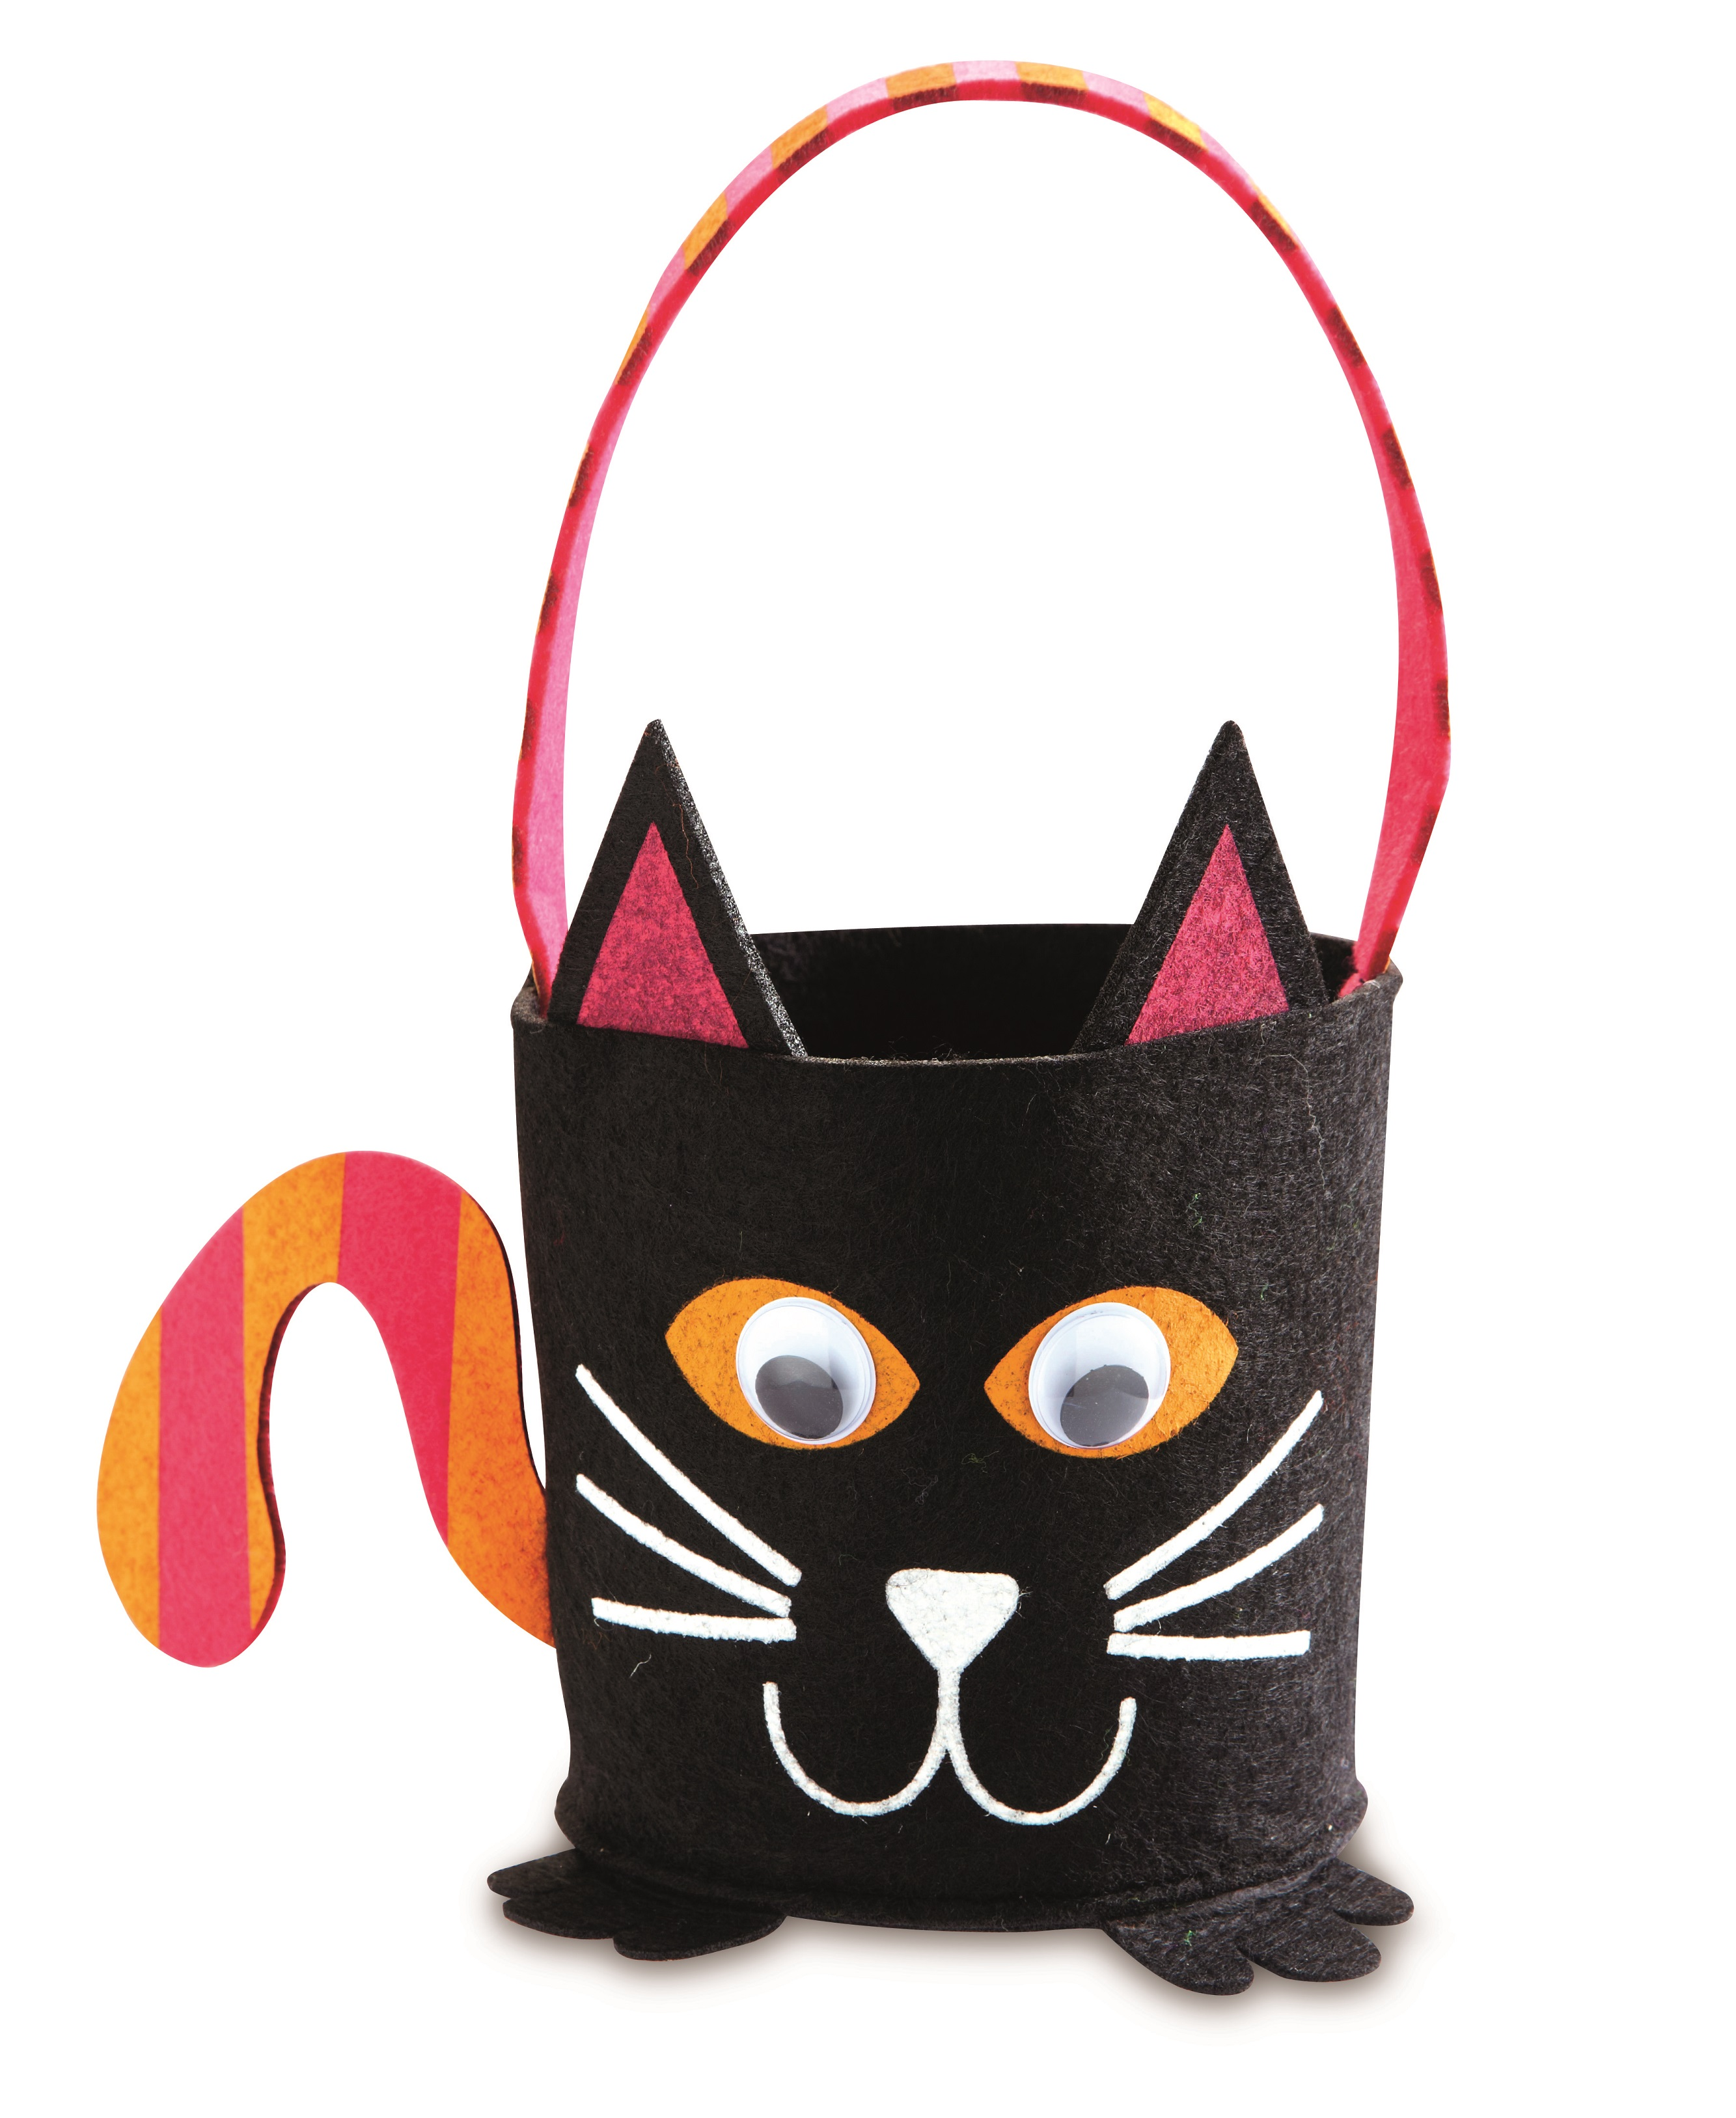 Aldi's Children's Felt Loot Bags €1.99 each